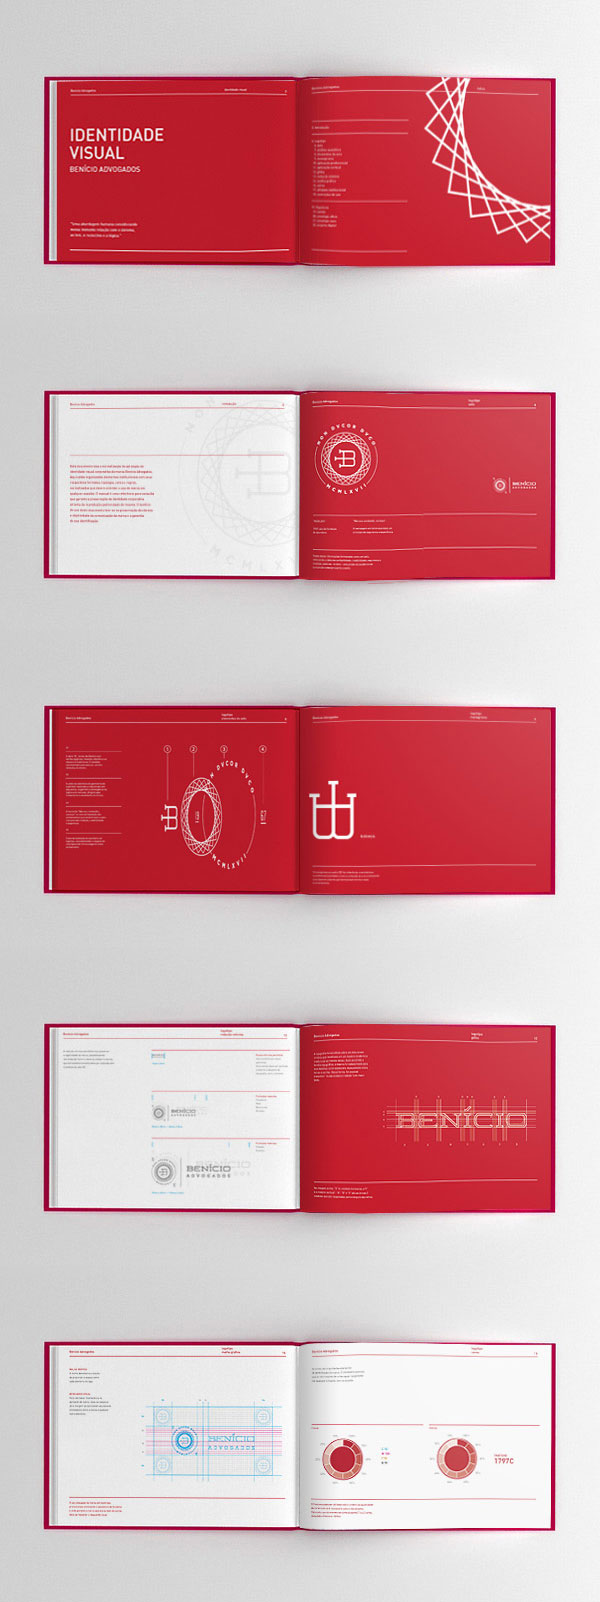 A Sophisticated Lawyer's Office Identity Design